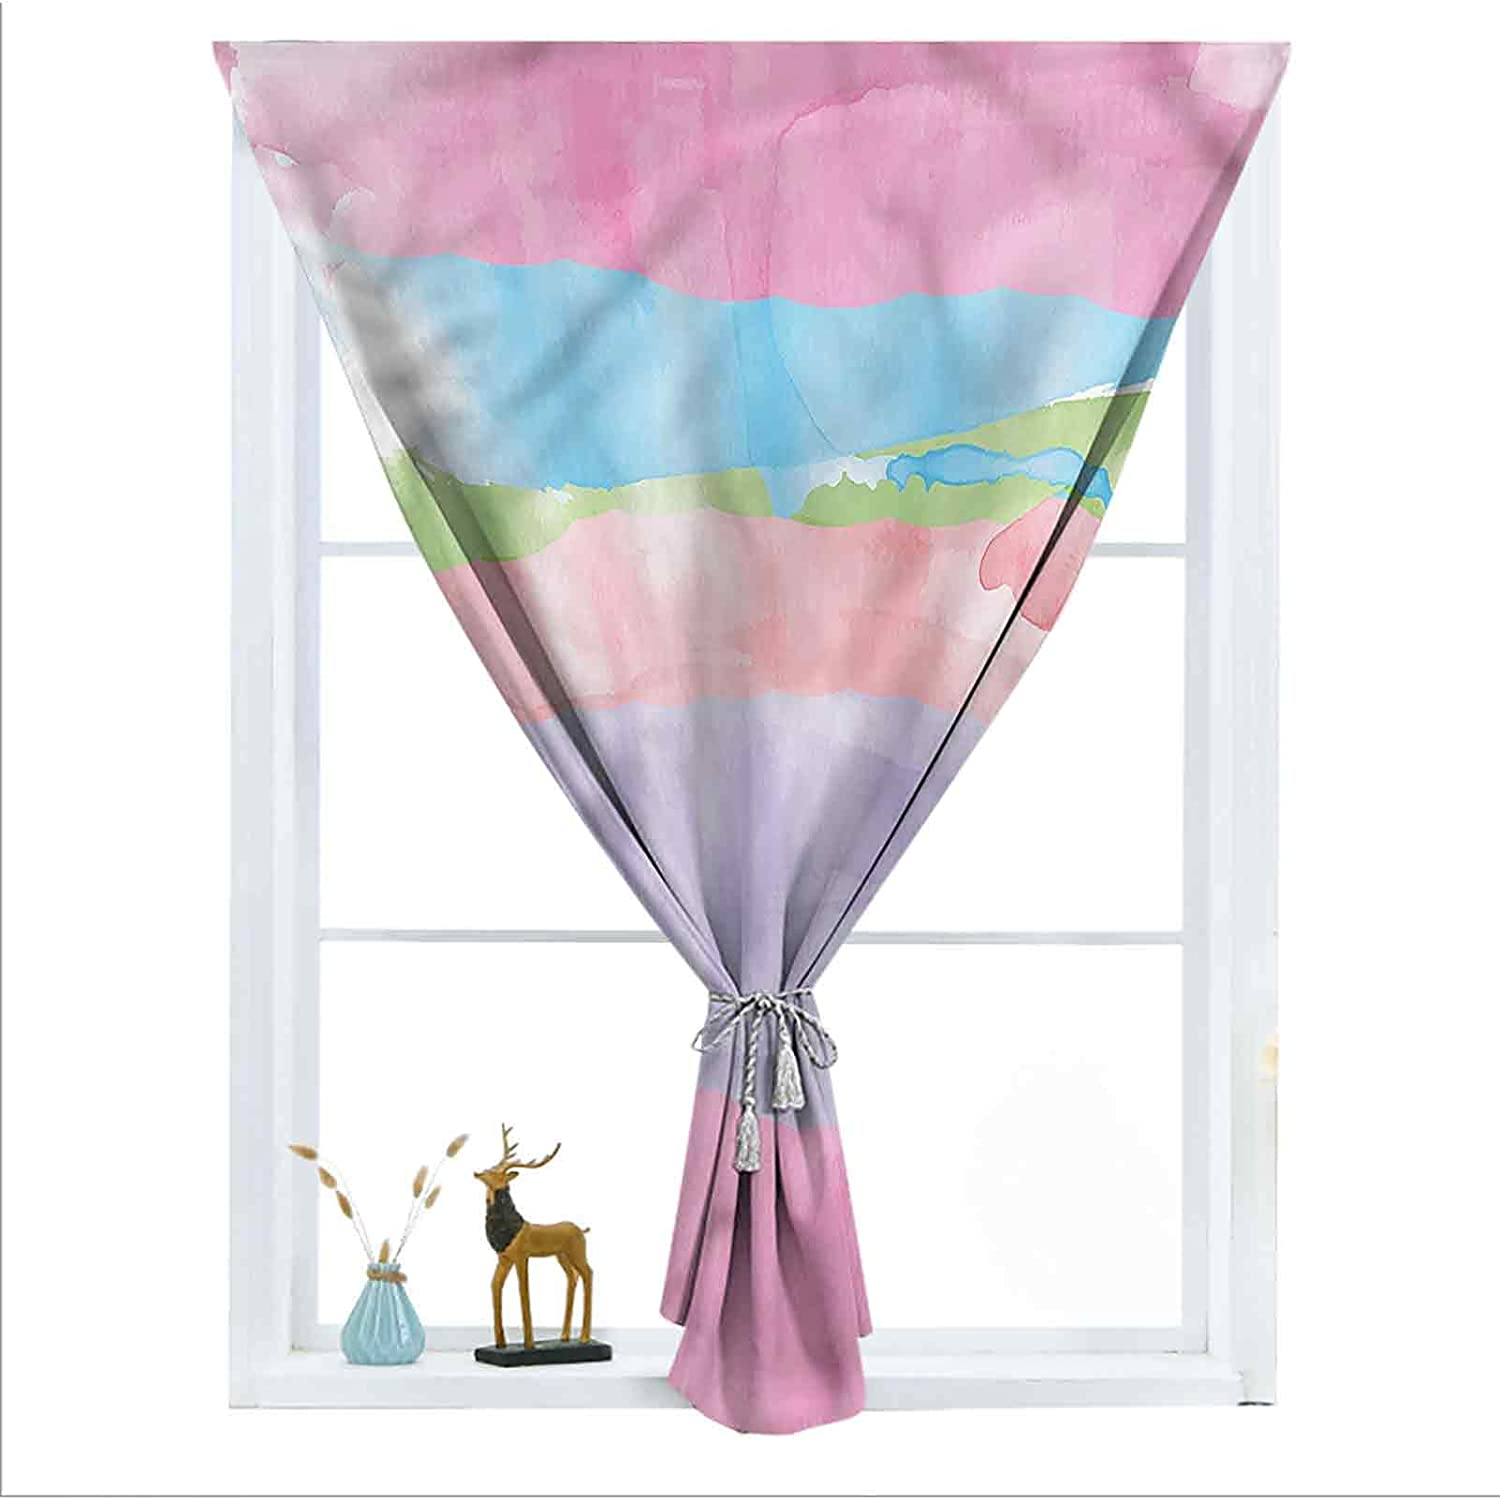 ousente Abstract Decorative Room Darkening Paint outlet Small Curtains Cheap mail order shopping